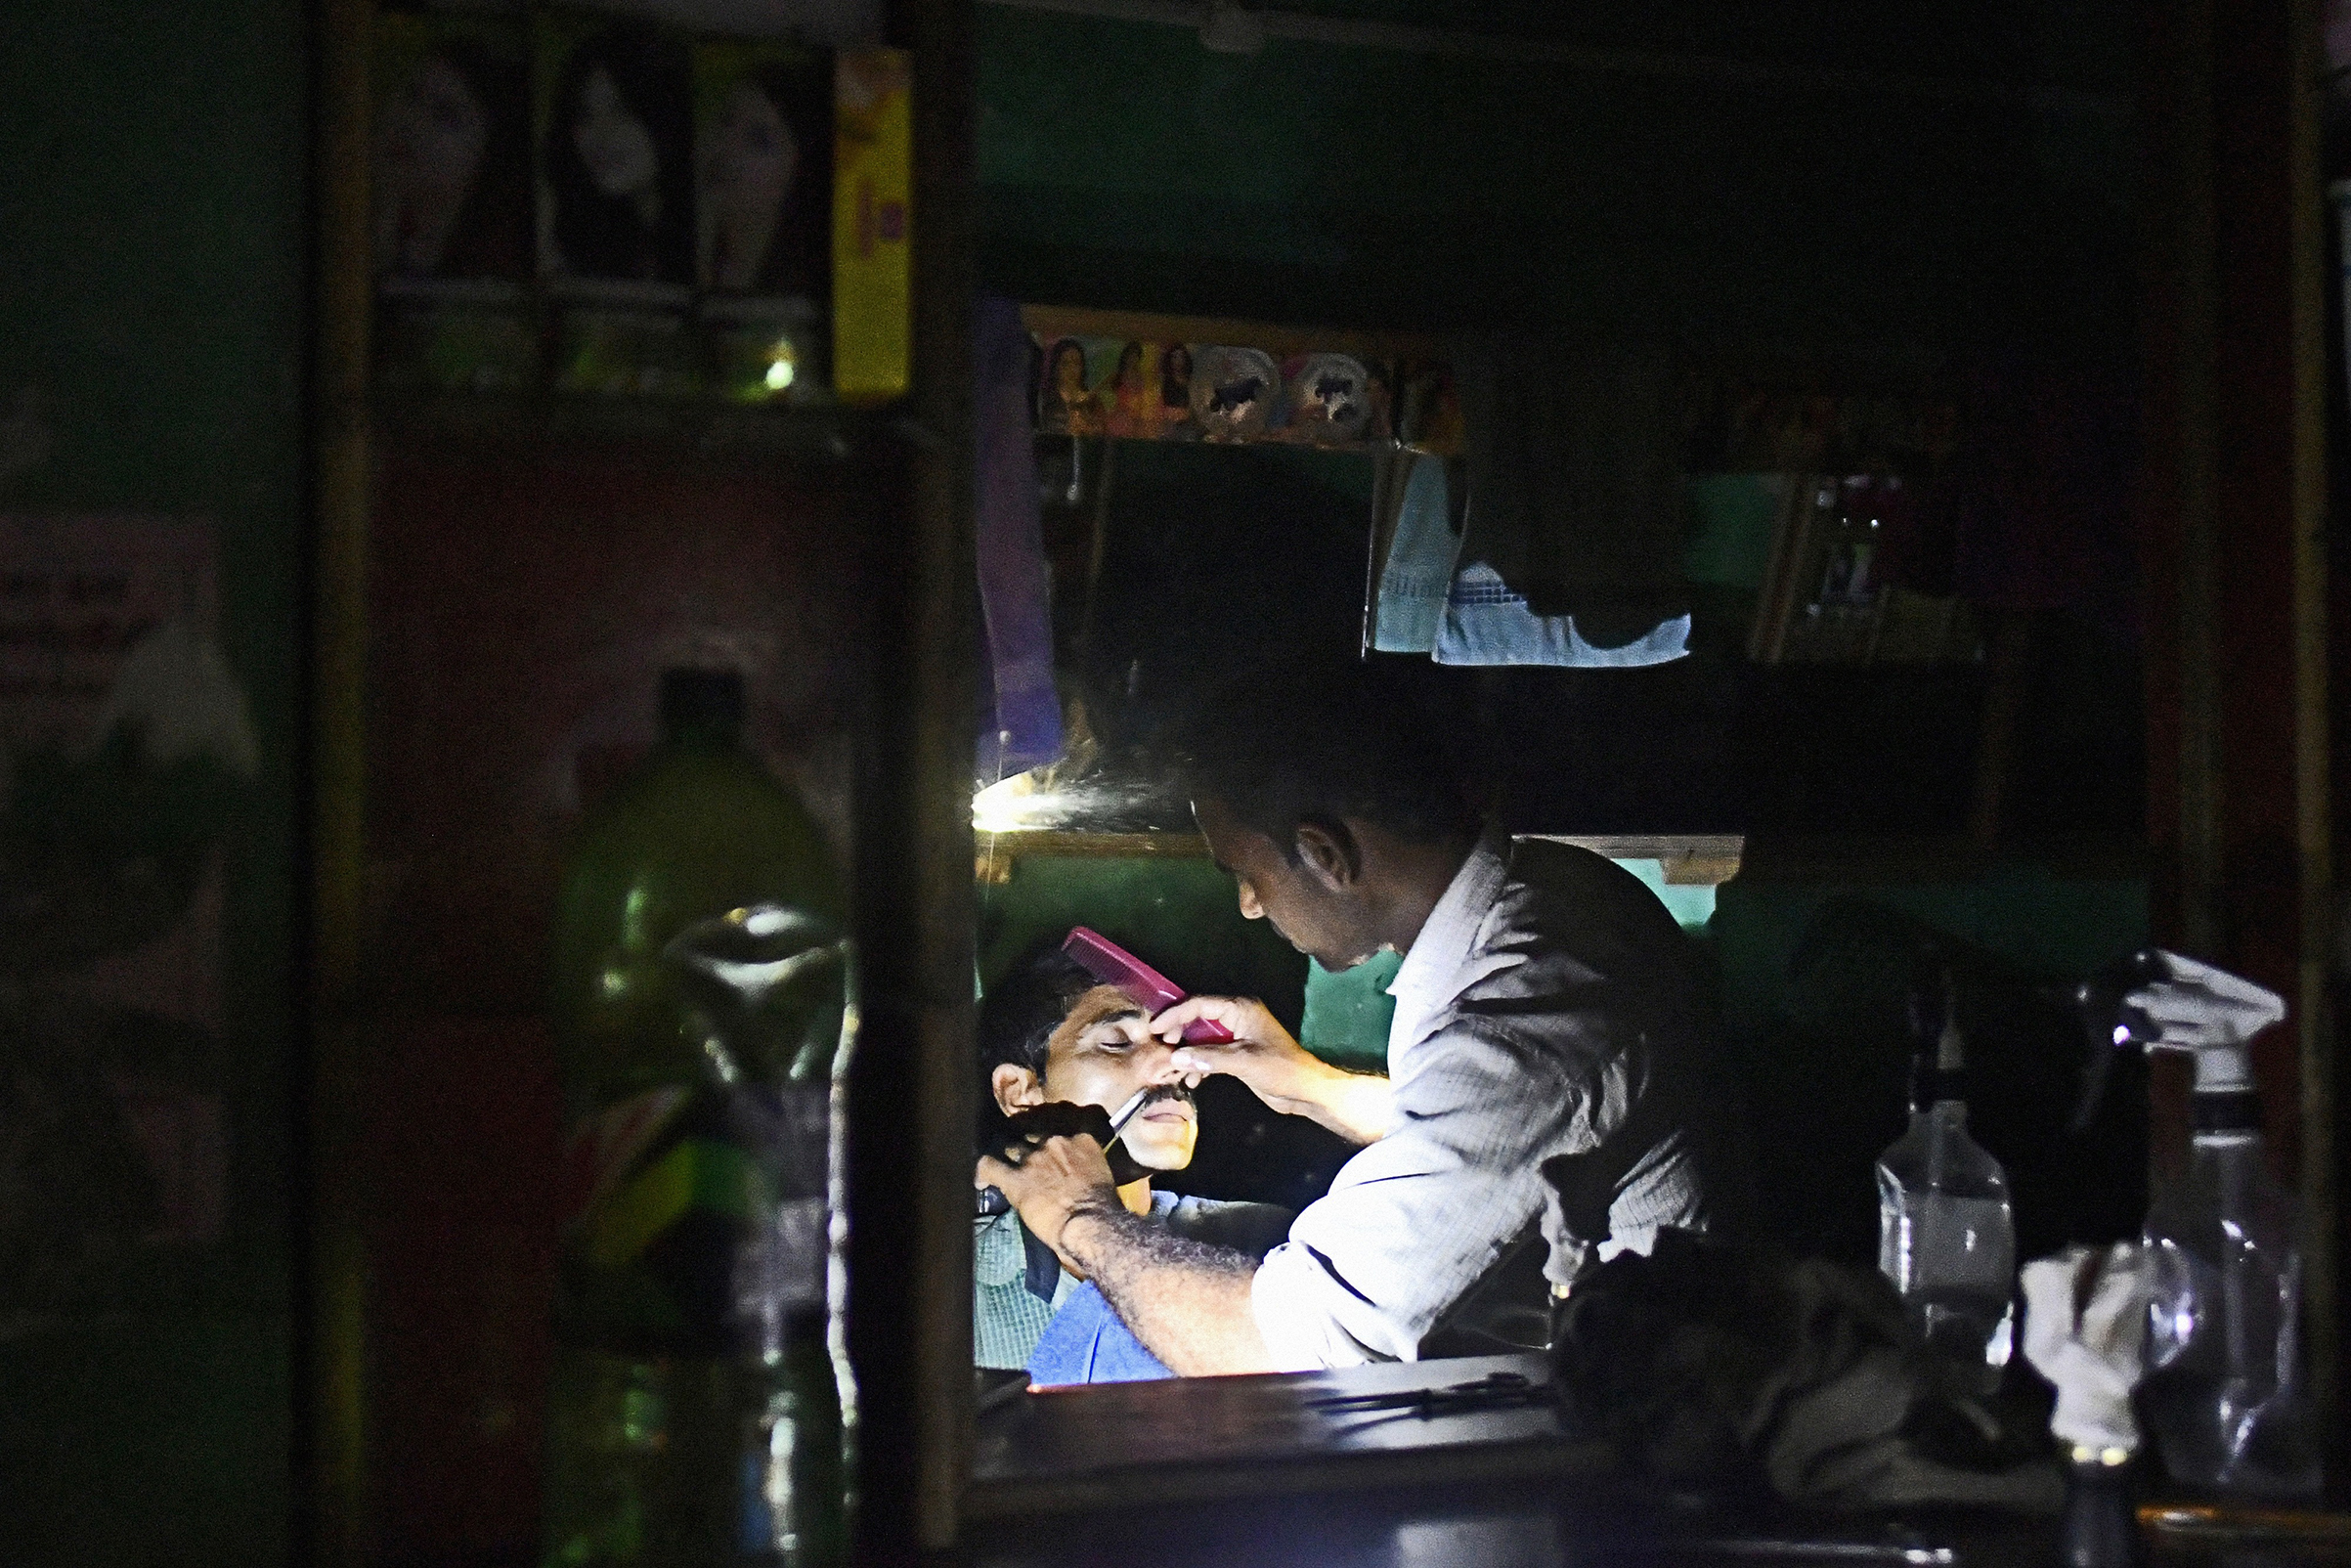 A customer gets a shave at a barber shop illuminated by the torch function of a mobile phone in a village on the outskirts of Alwar, Rajasthan, India on April 17, 2018.